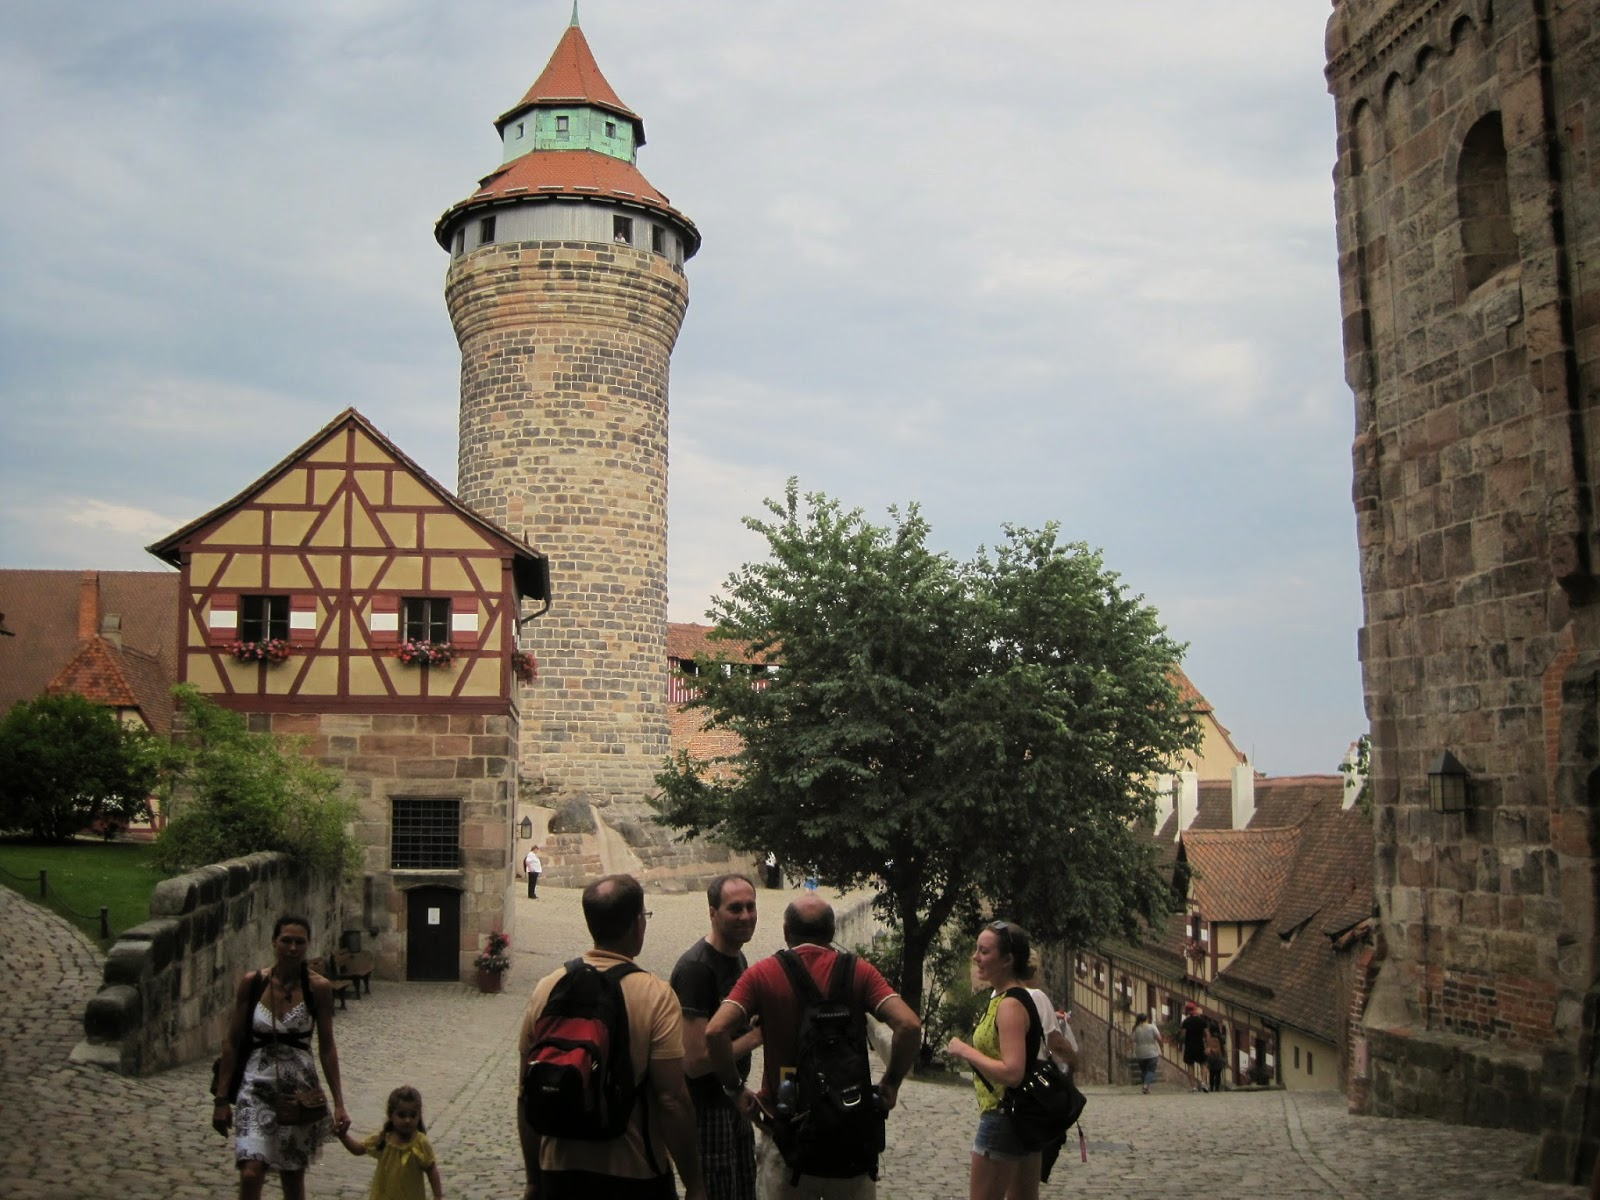 Visiting Nuremberg Castle